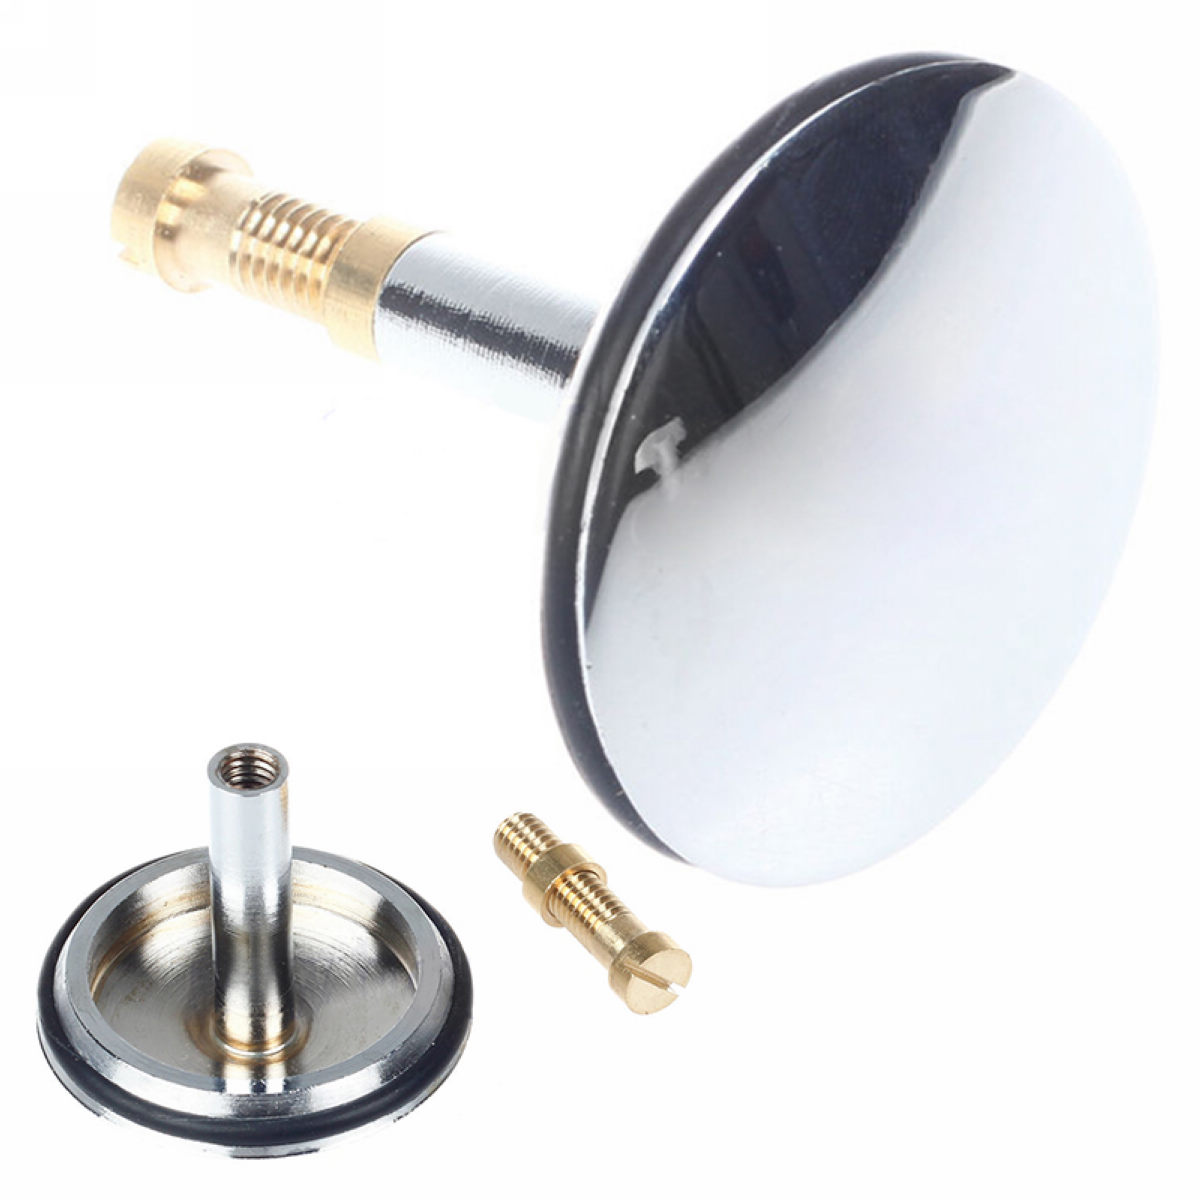 US $5.0 30% OFF|1pc Chrome Stainless Bathroom Sink Plug Adjustable Replacement Bath Basin Kitchen Sink Up Plugs|Drains| |  - AliExpress